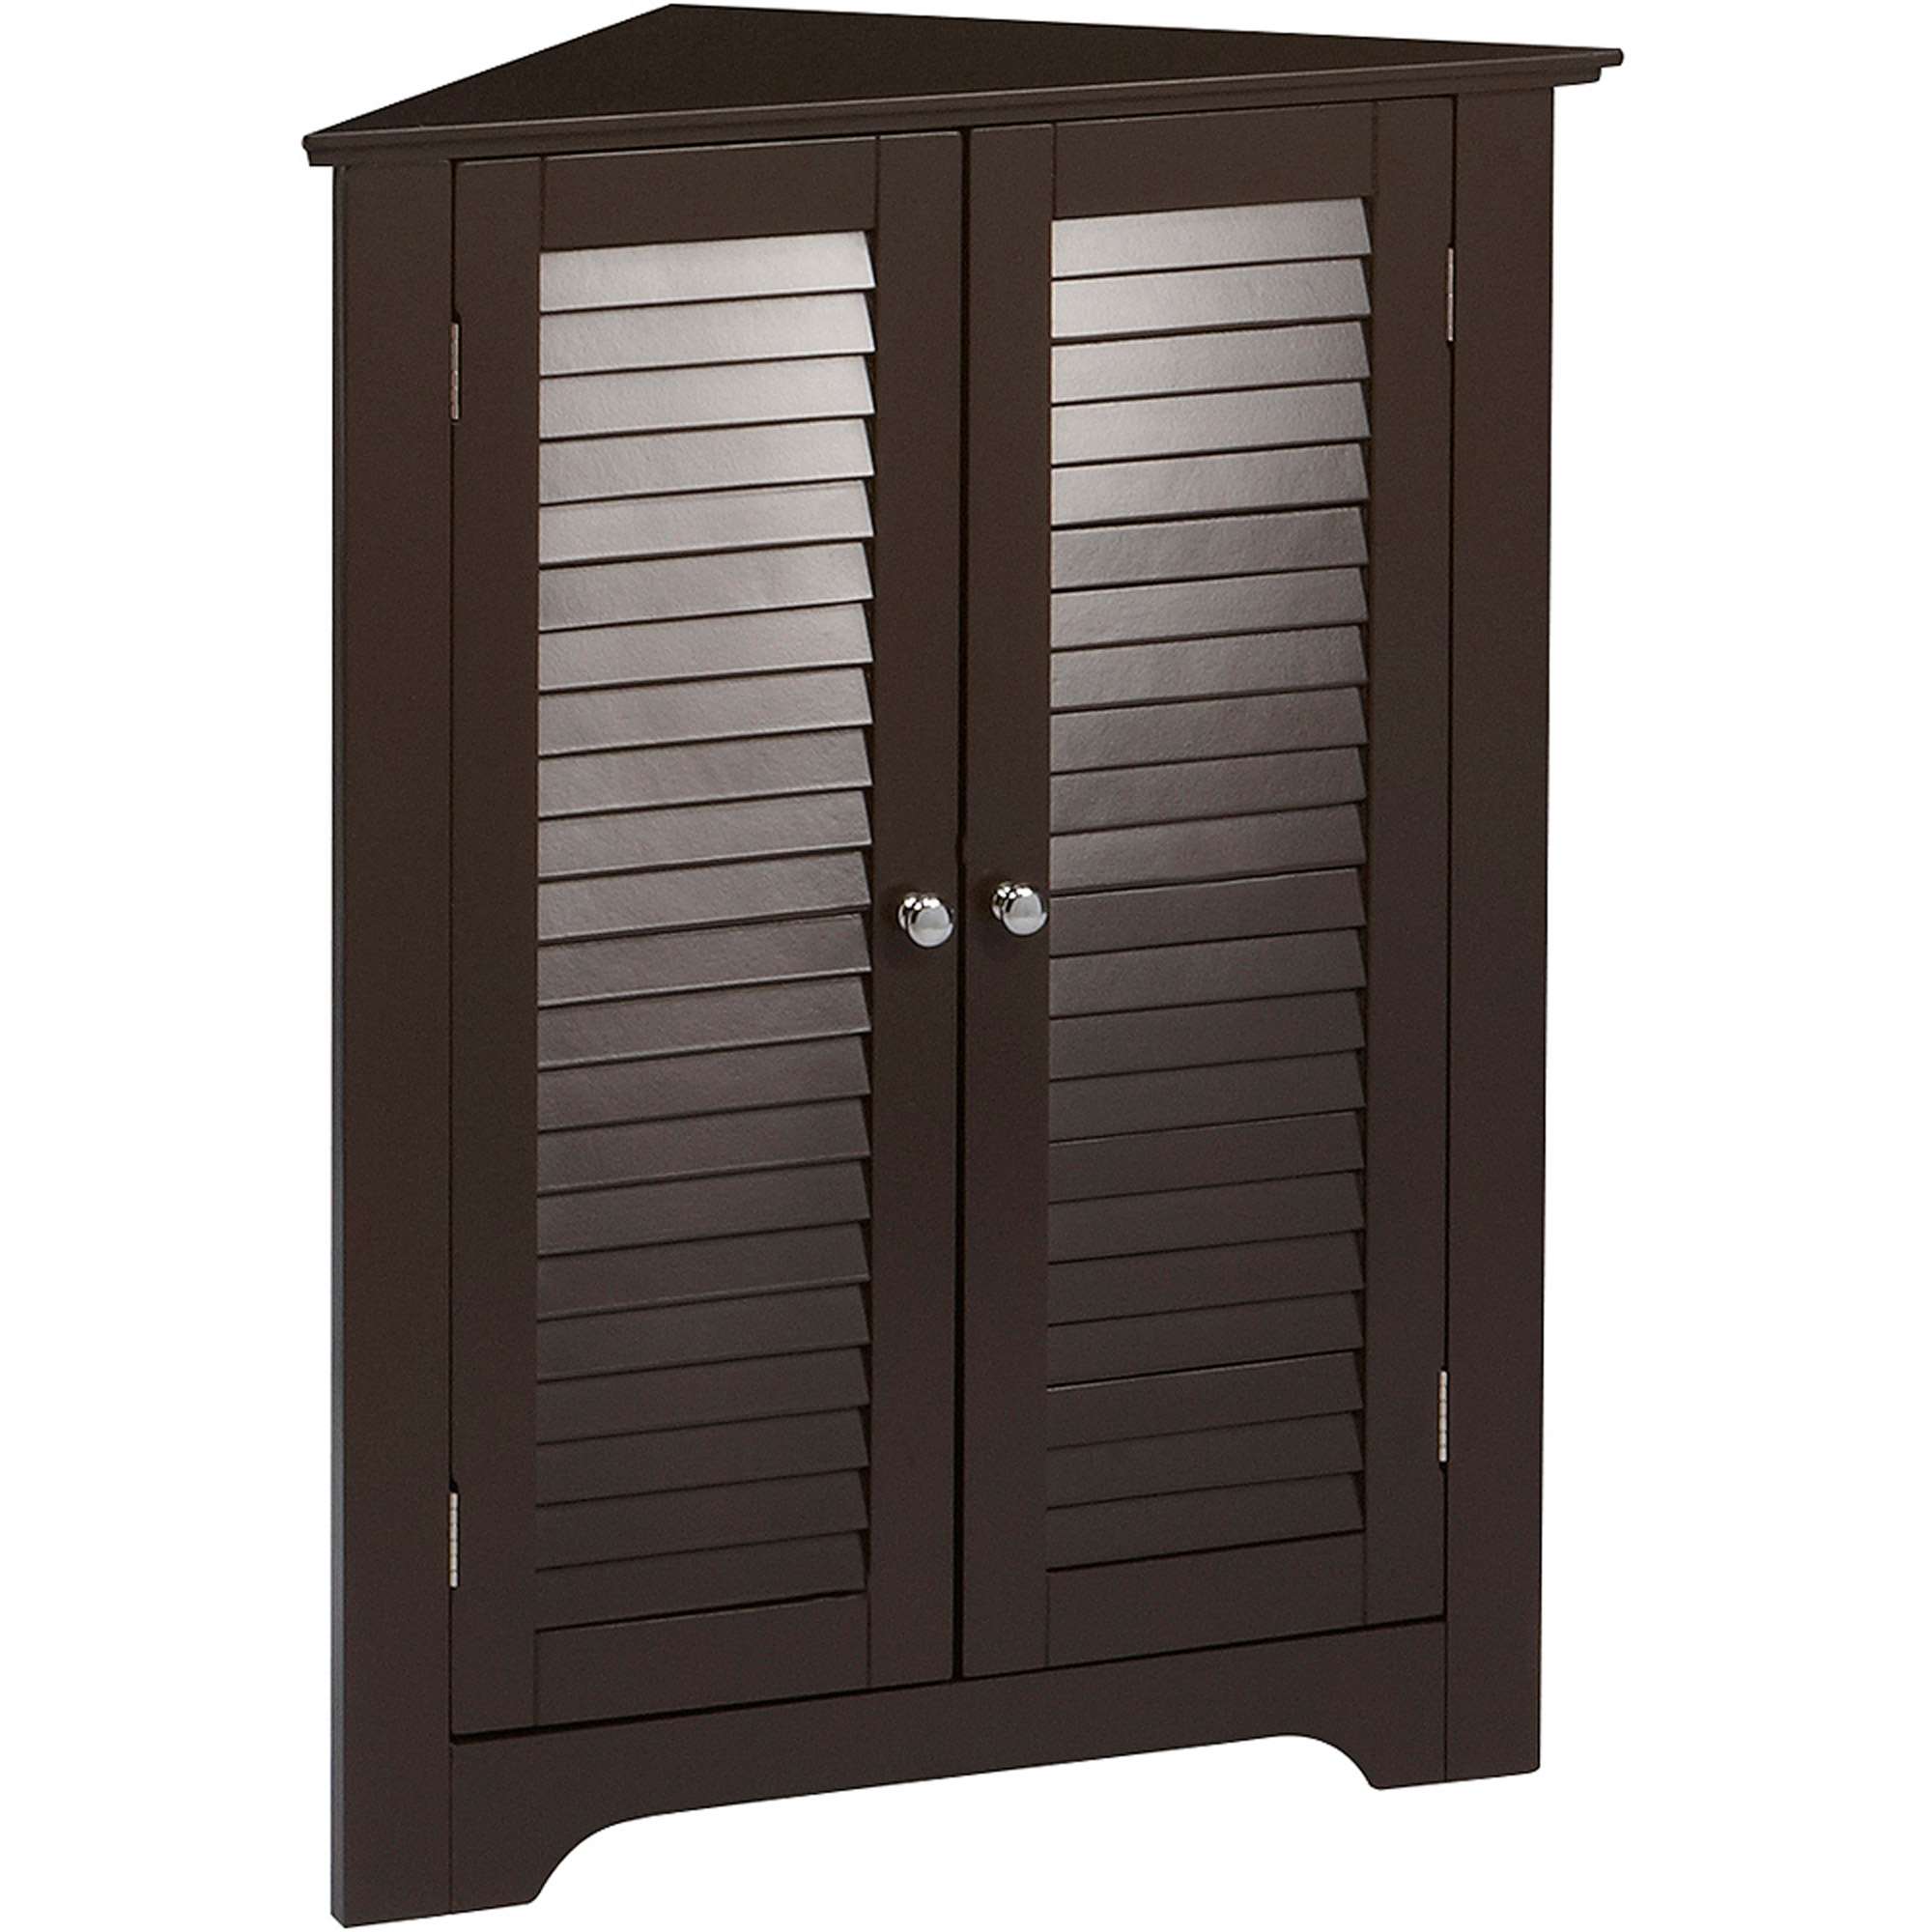 RiverRidge Ellsworth 3-Shelf Corner Cabinet, Espresso - Walmart.com